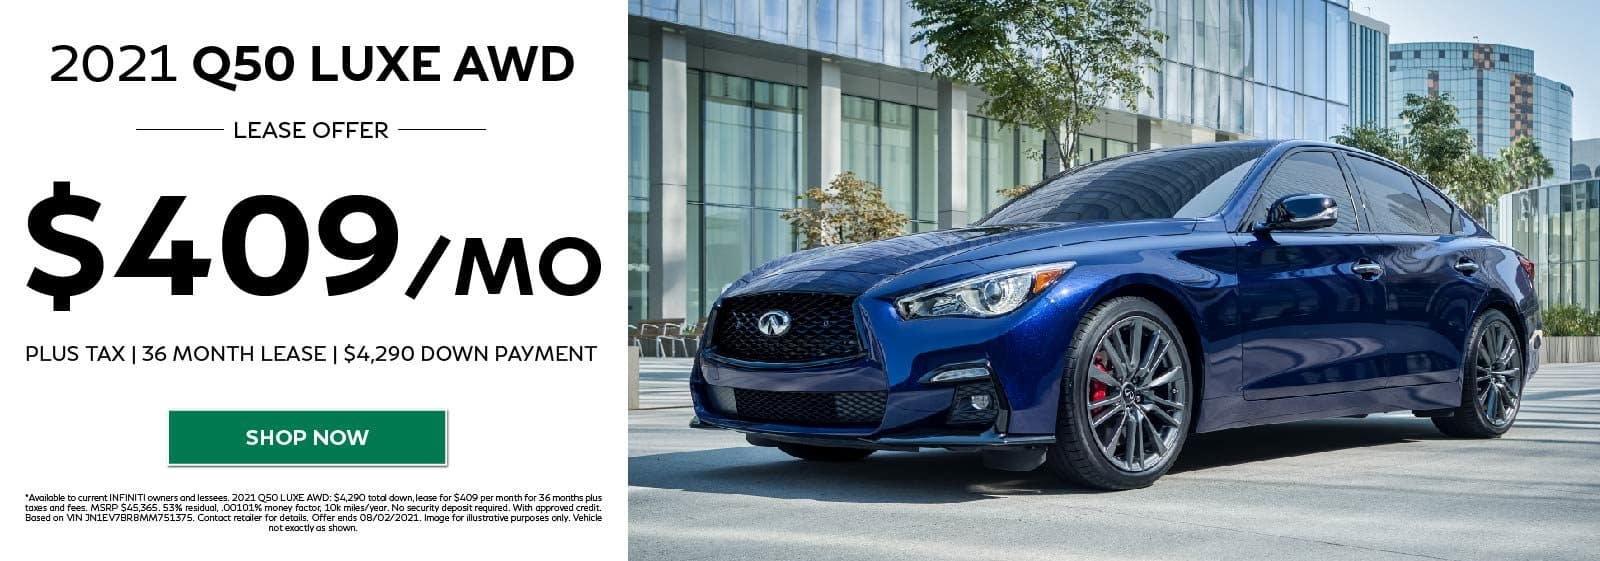 2021 Q50 LUXE AWD $409/MO FOR 36 MOS